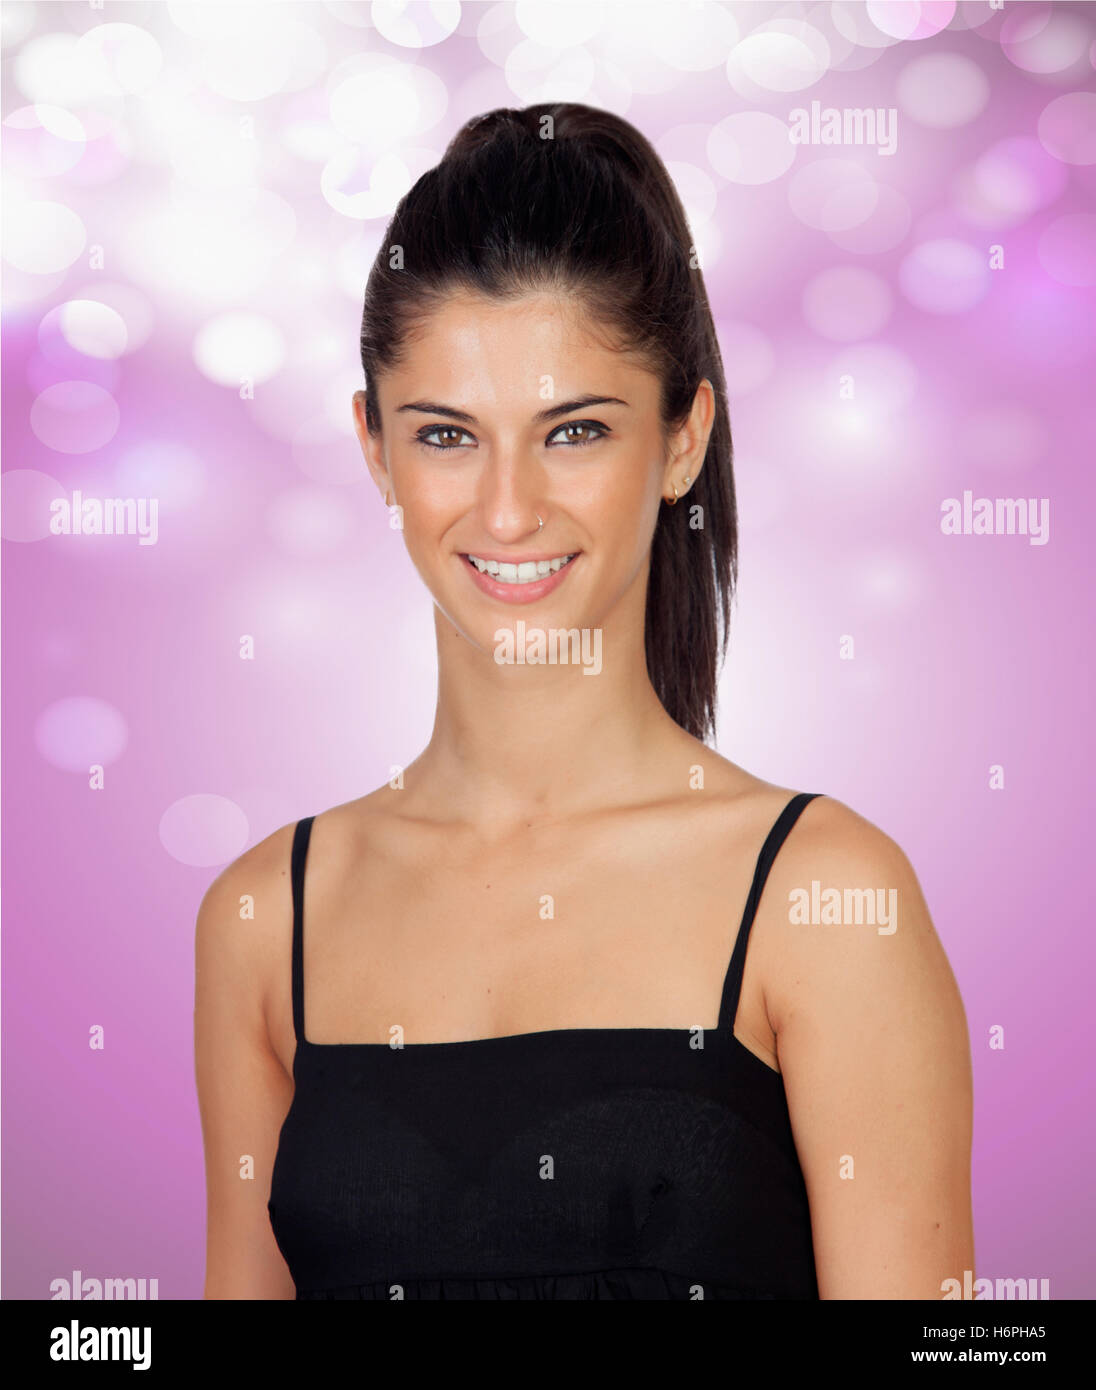 Attractive brunette girl with a pierced nose on a pink and bright background Stock Photo